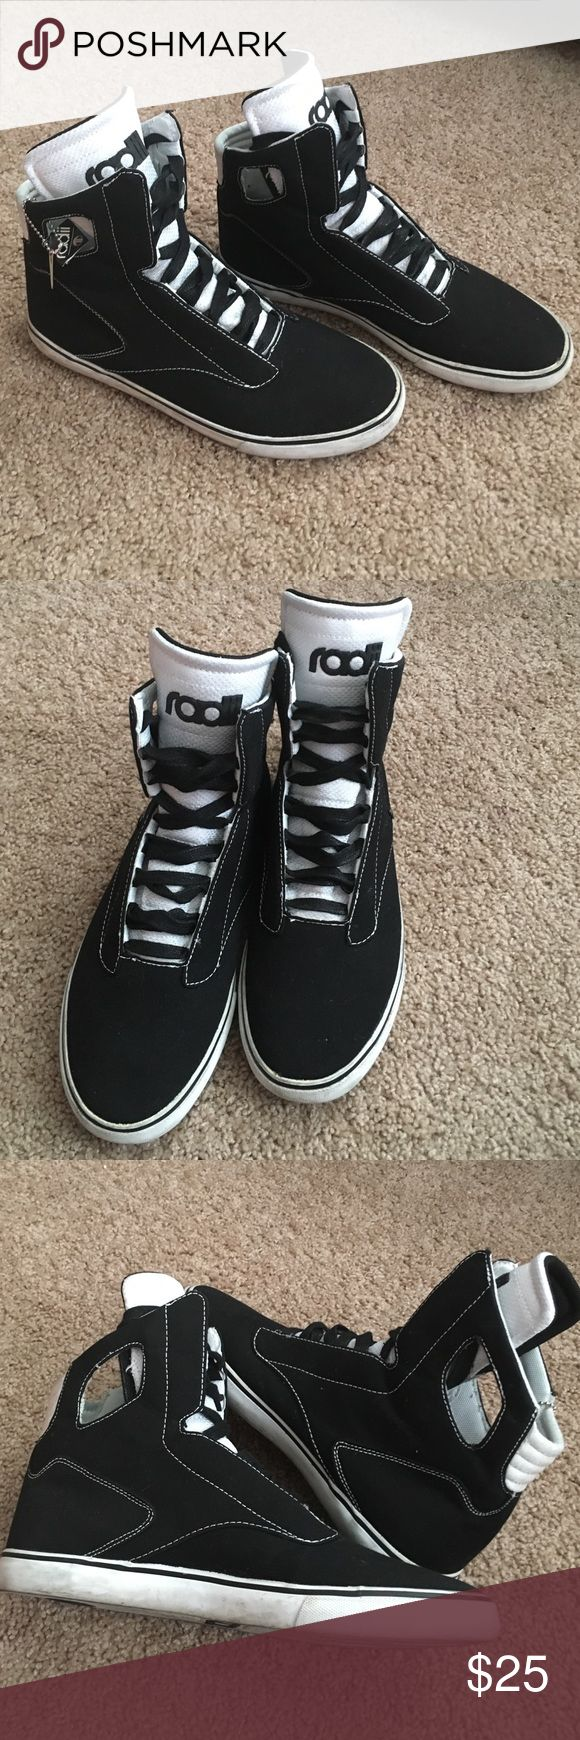 Radii high tops Men's black and white canvas Radii Noble VLC high tops. Some discoloration to white outsoles, back/heel tag is peeling. No longer have original box Radii Shoes Sneakers